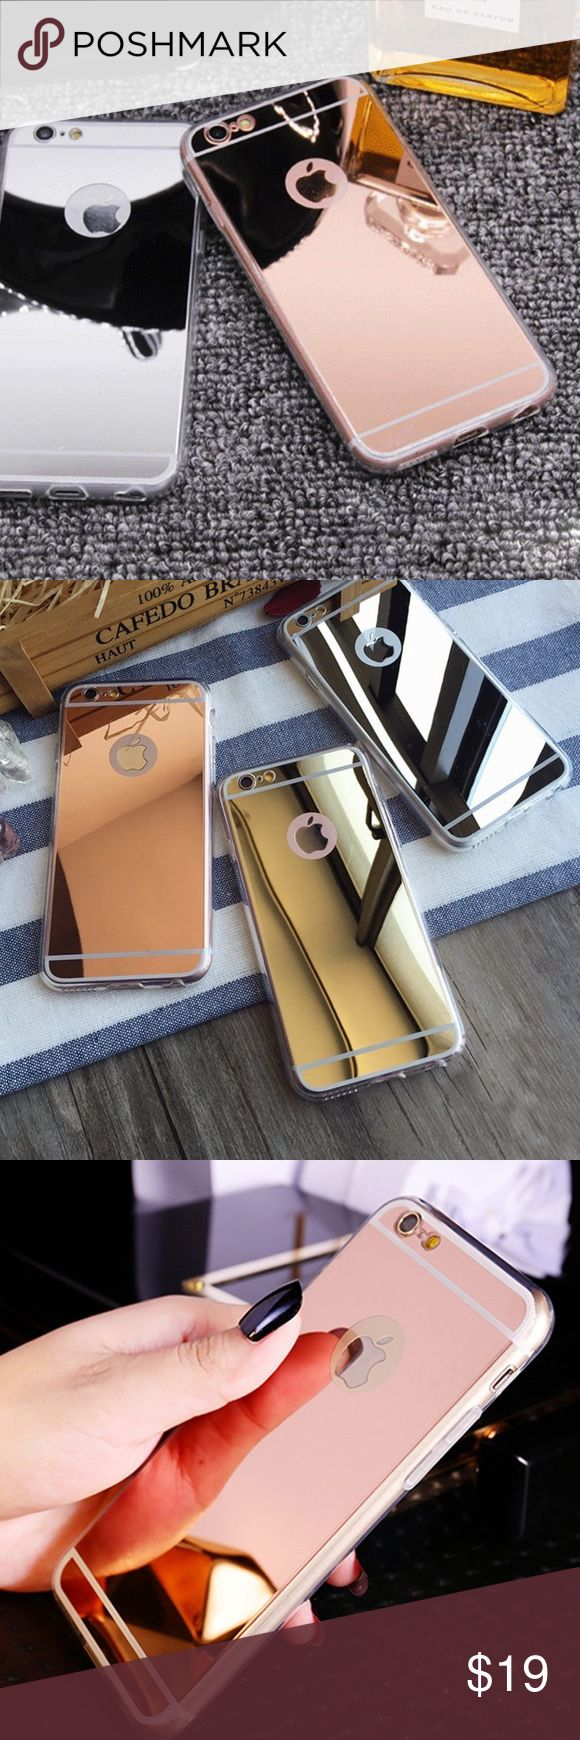 New Mirror iPhone 6 / 6s Case Silver, Gold, & Pink Brand new! I don't trade, price firm unless bundled! Accessories Phone Cases